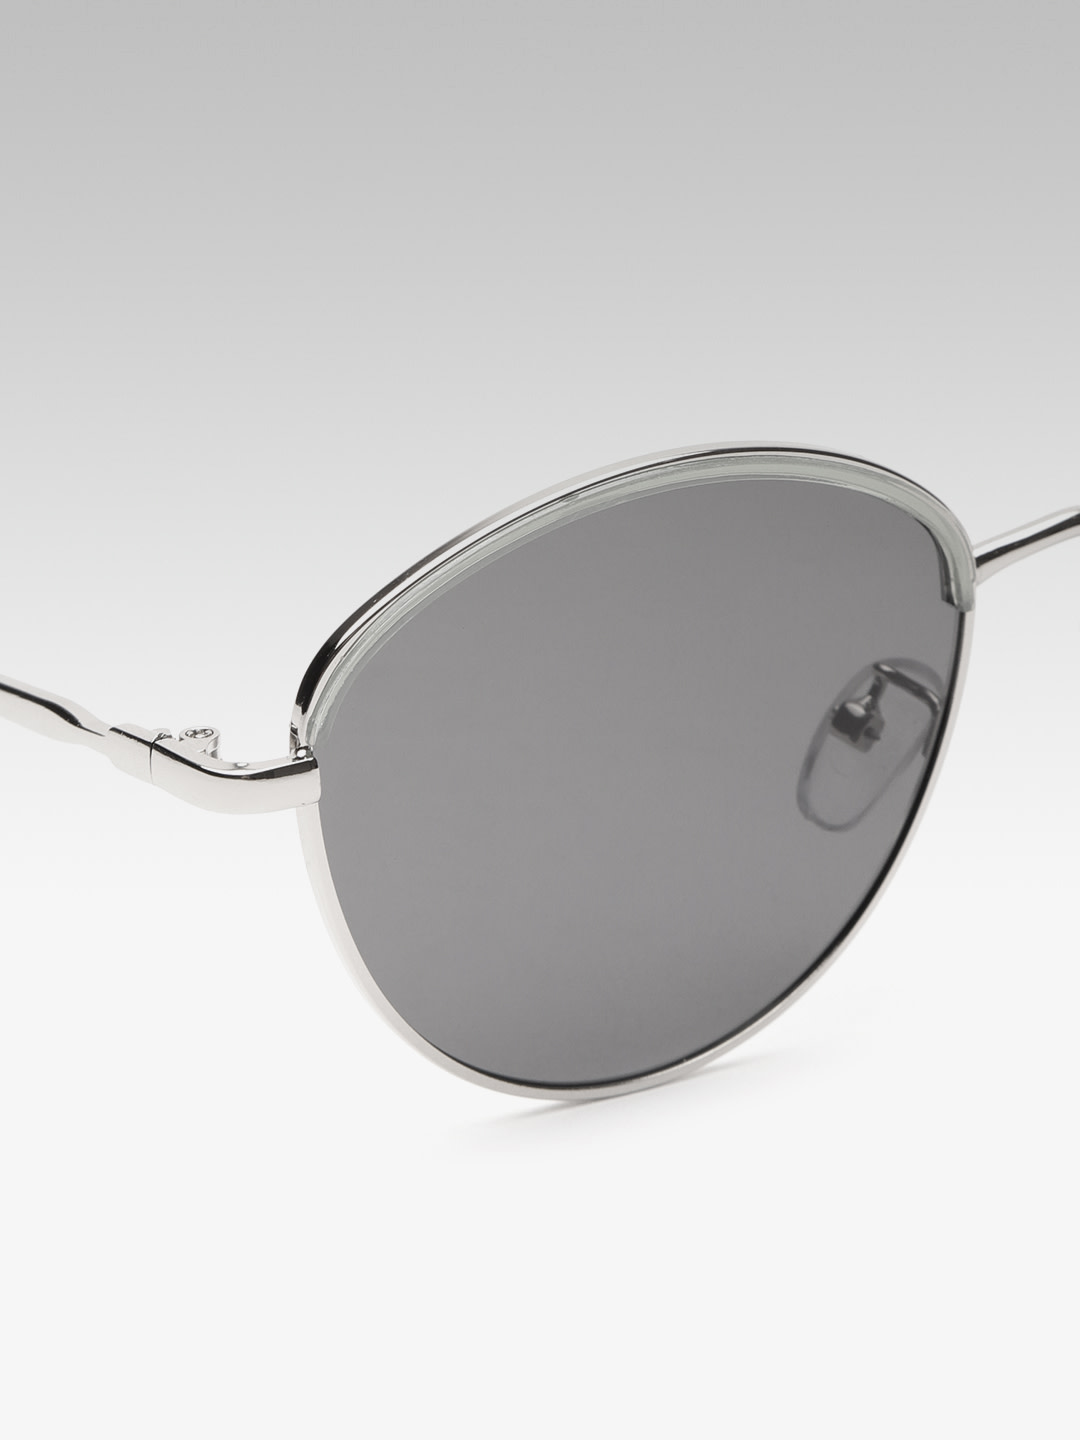 Sunglasses-The Timeless Classic Sunglasses3